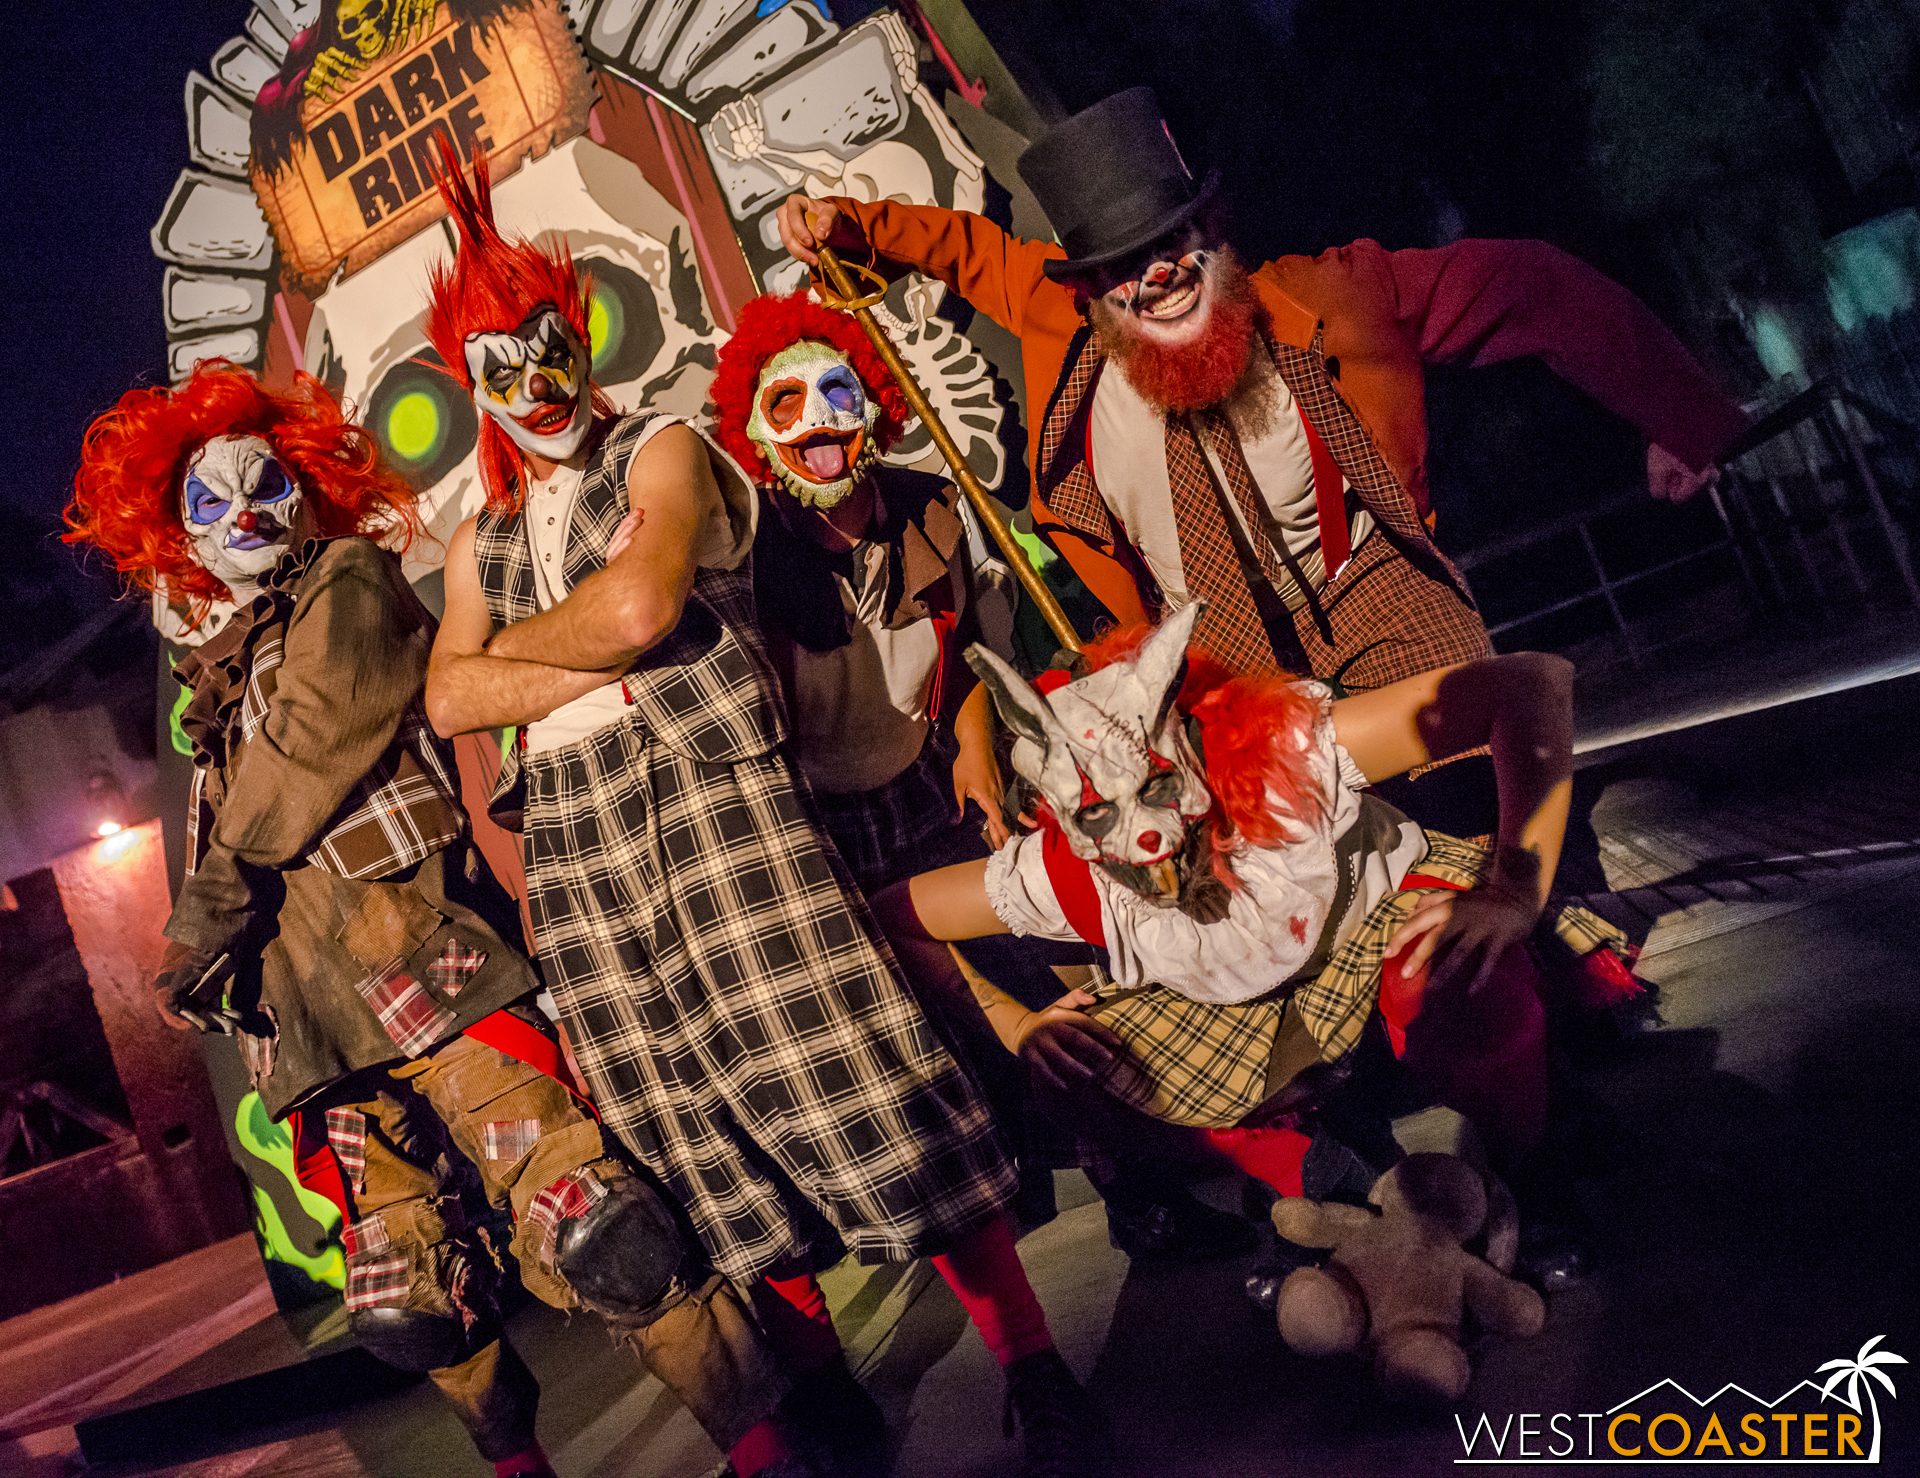 A gang of Carnevil clowns poses in front of the Dark Ride photo op backdrop.